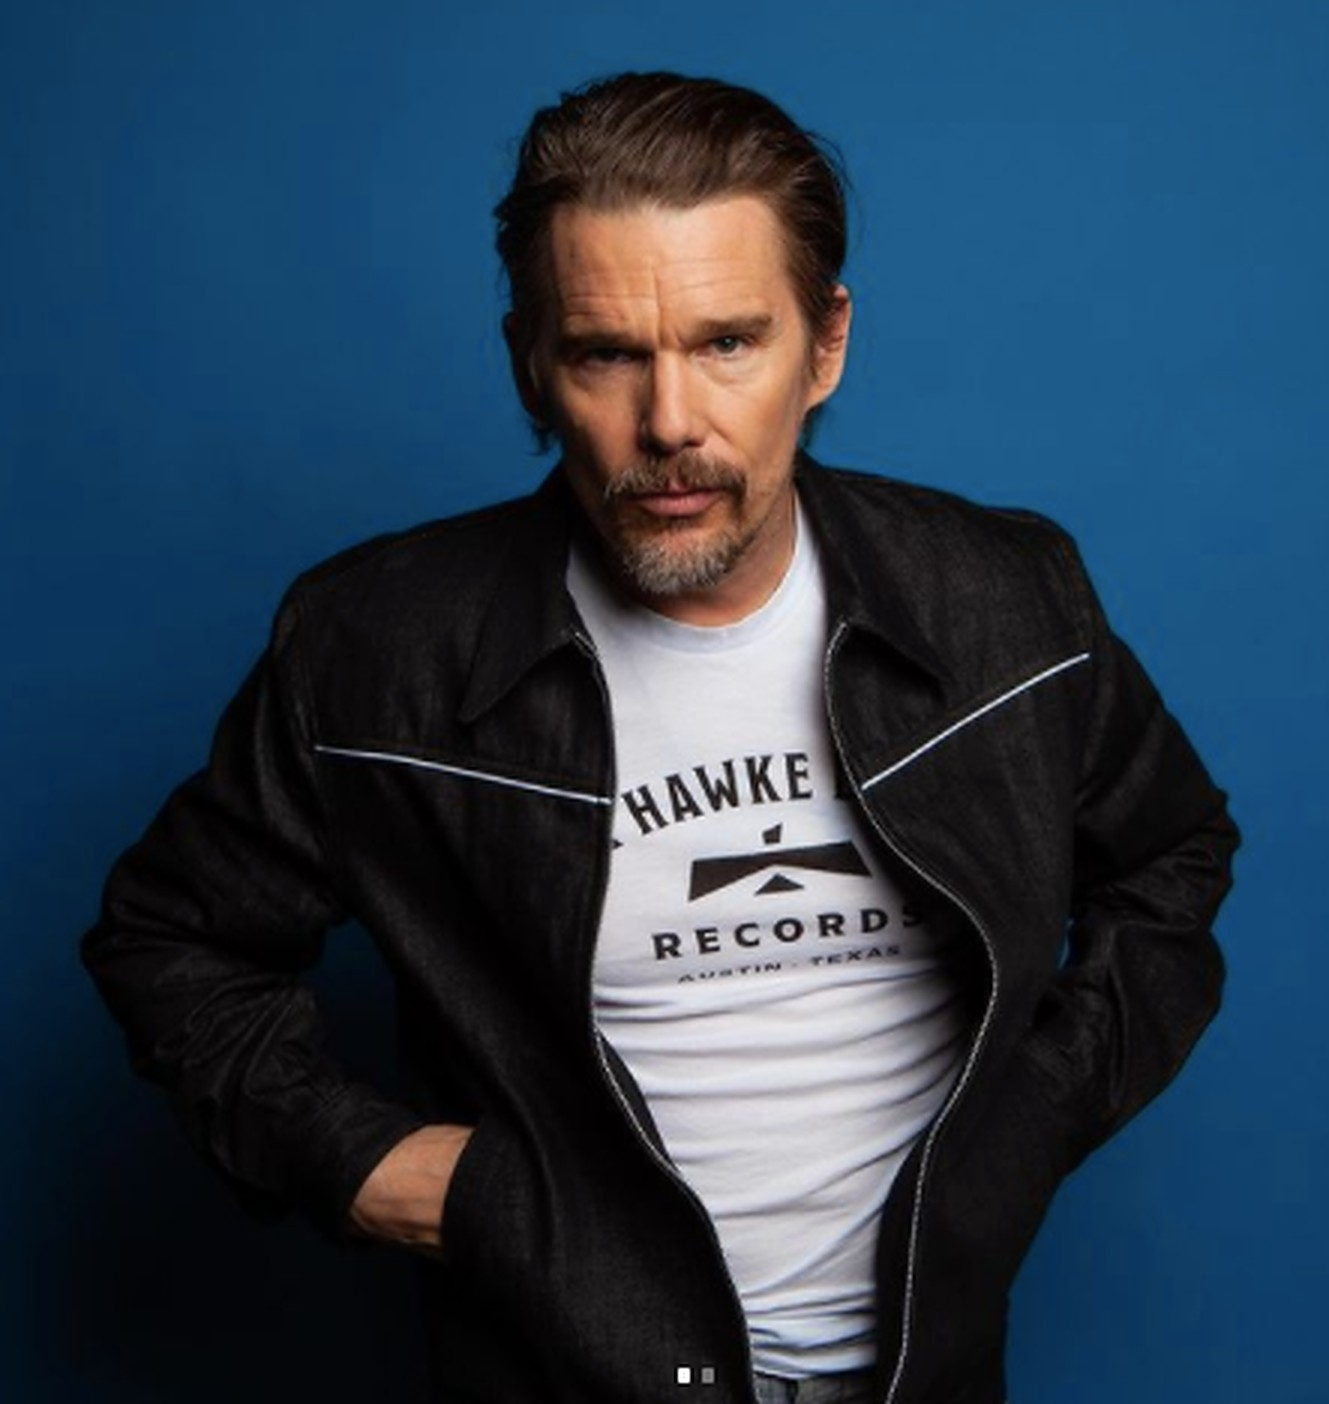 Ethan Hawke to play villain role in upcoming 'Moon Knight' series